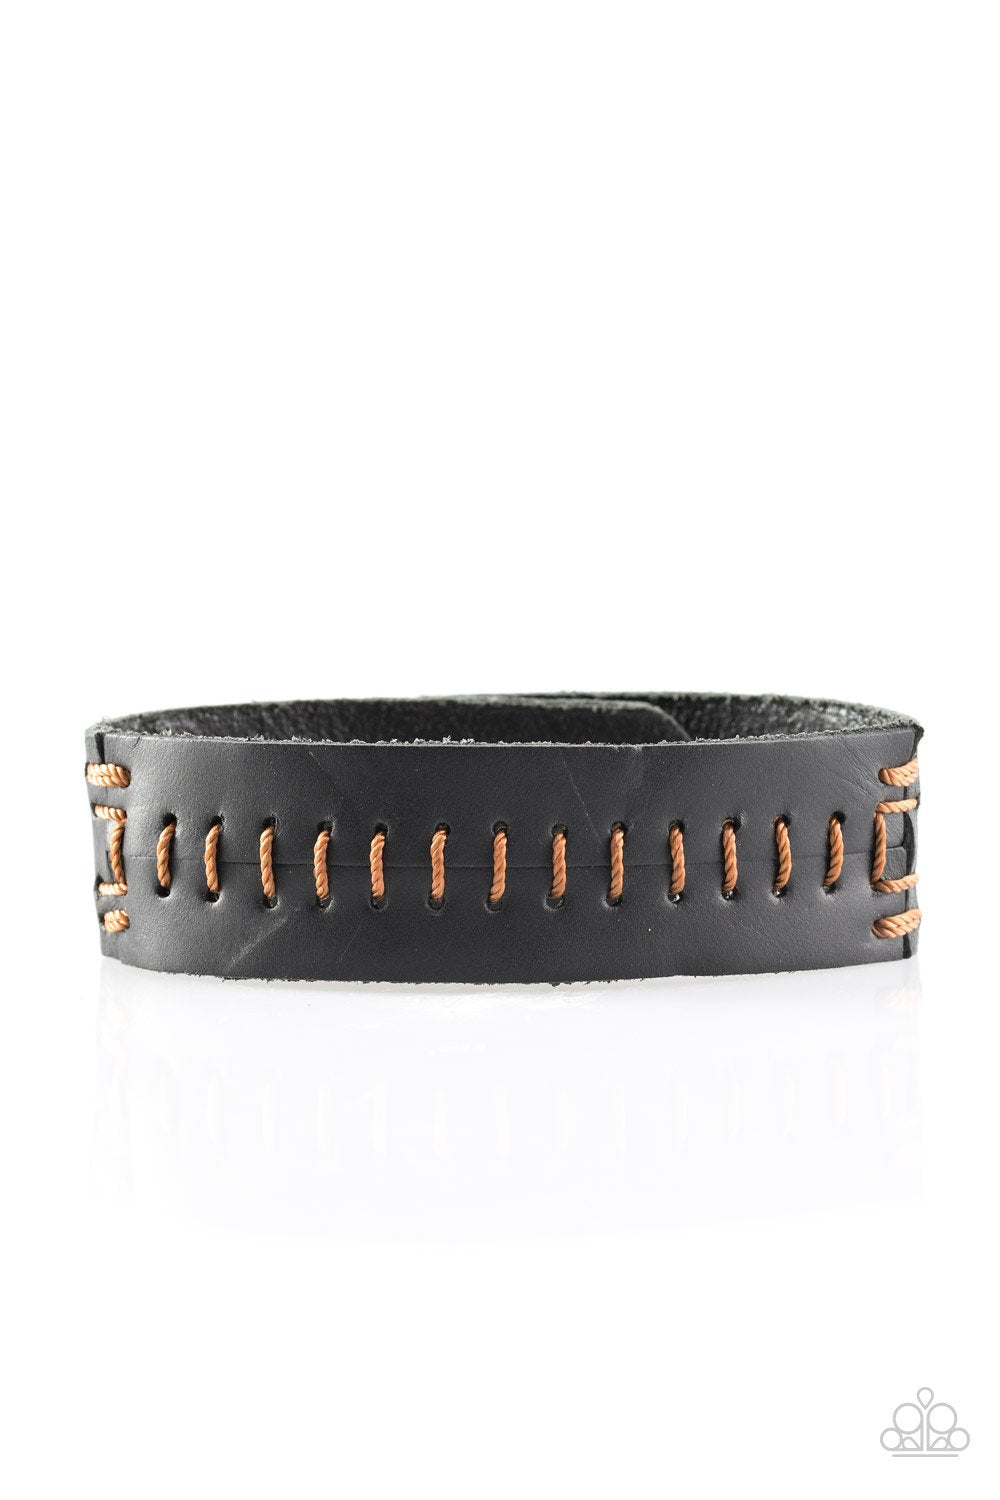 Paparazzi Accessories Take One For The Team - Brown Stitched Urban Bracelet - Be Adored Jewelry